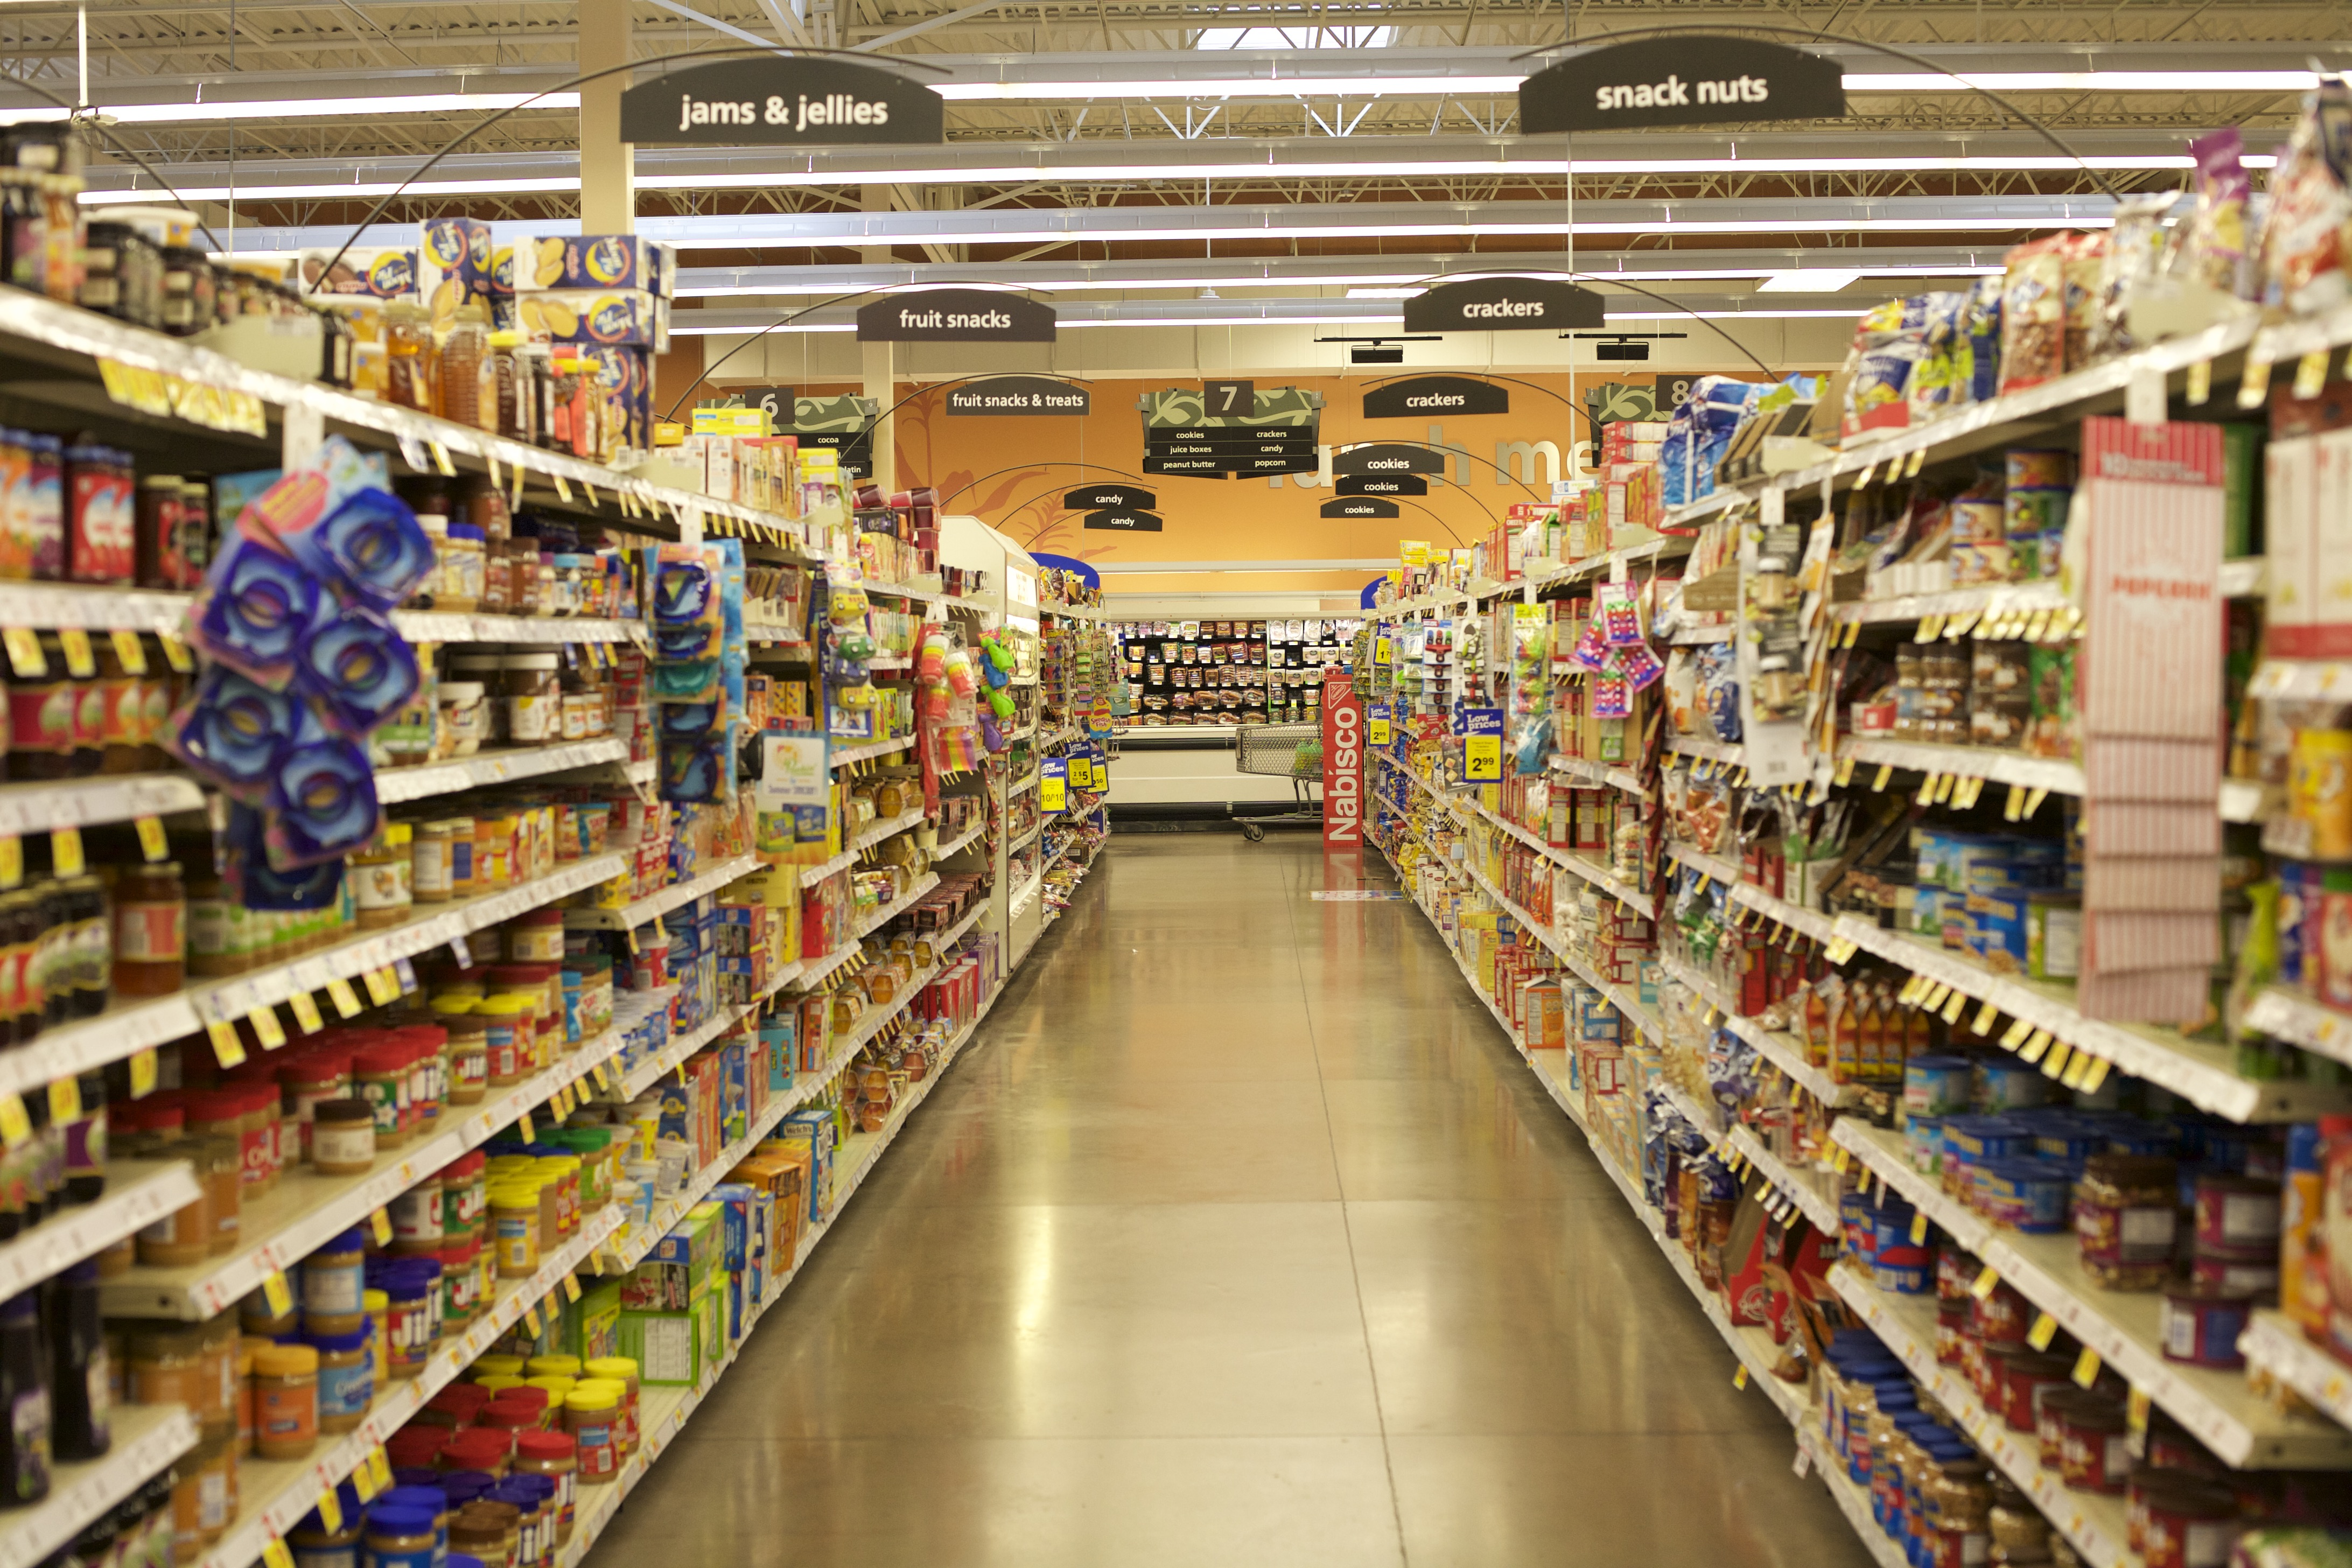 4+ REASONS TO SHOP YOUR LOCAL KROGER GROCERY STORE